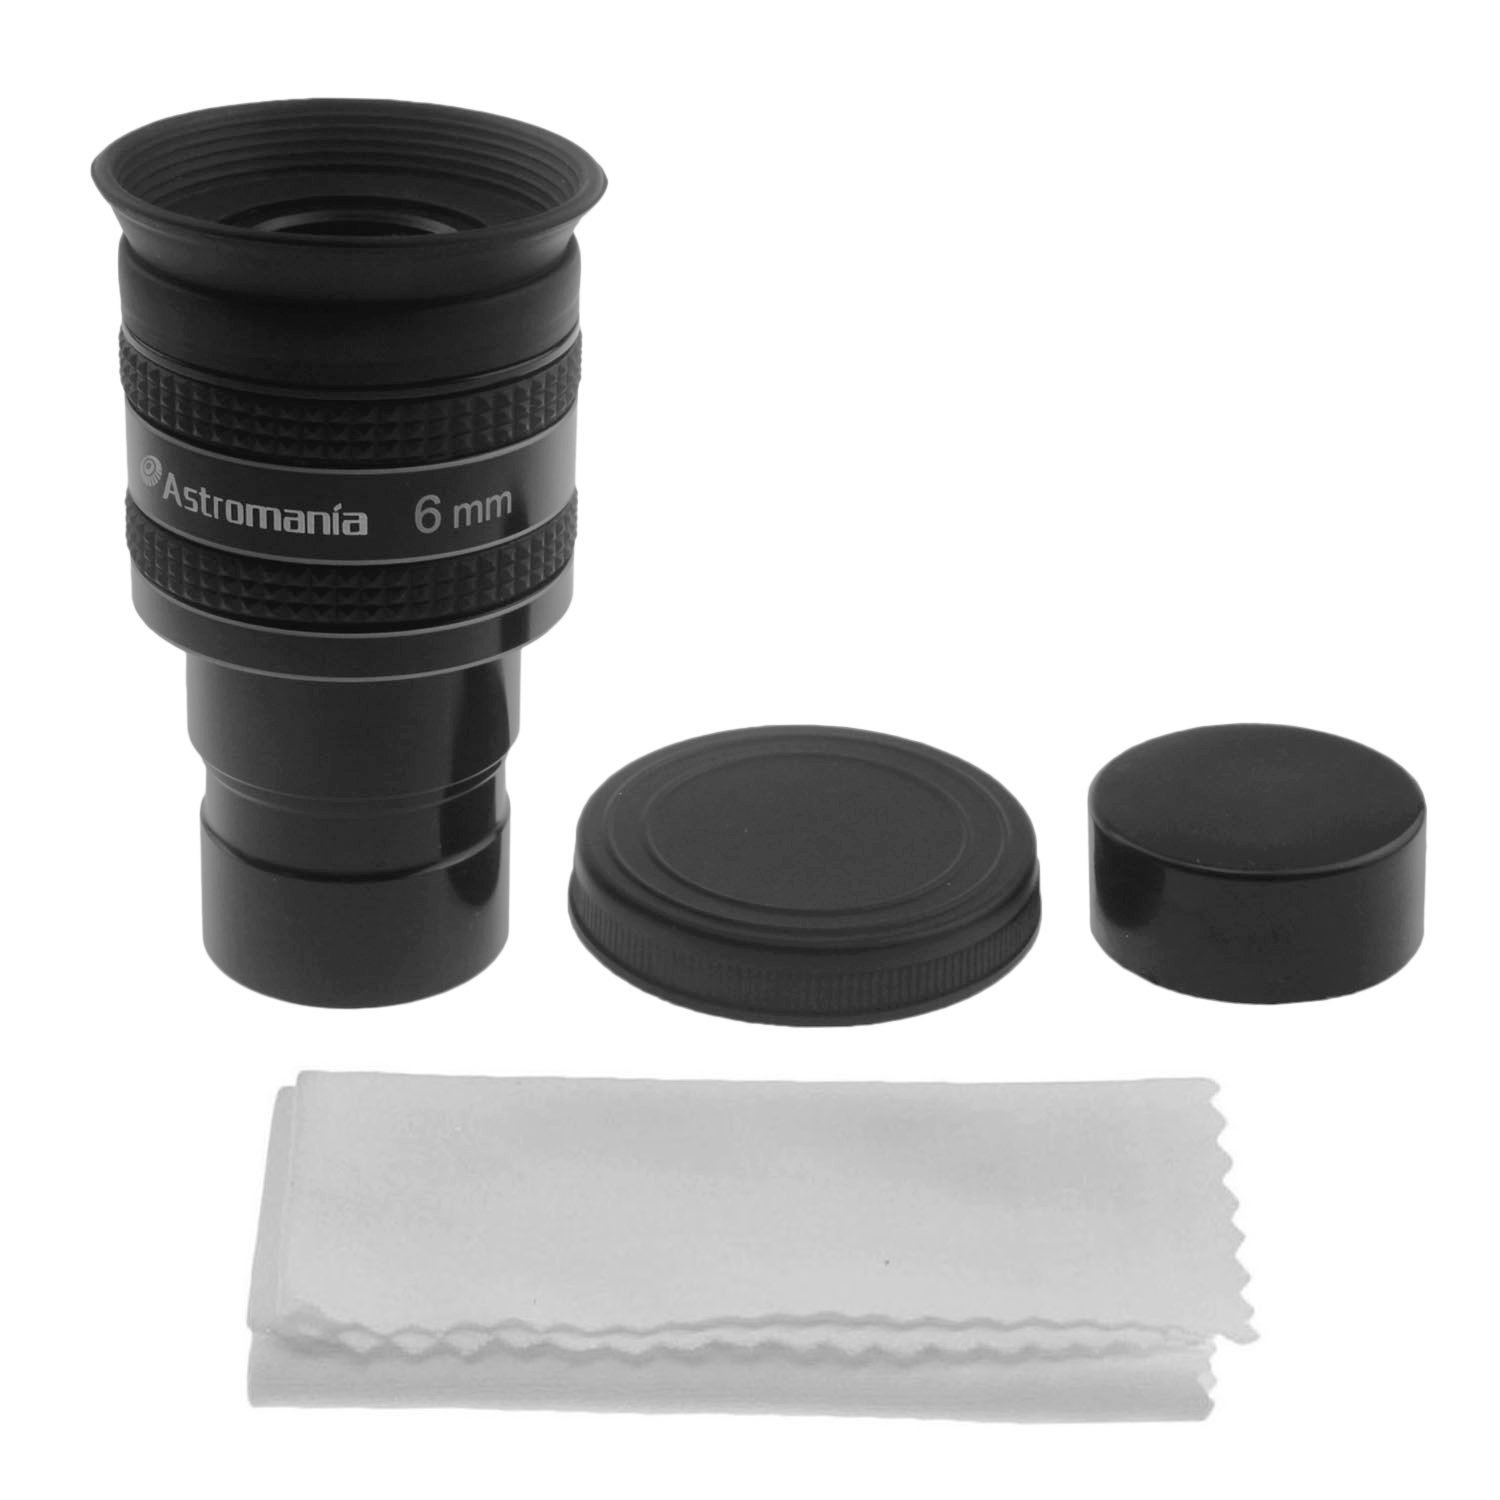 Astromania 1.25'' 6mm 58-Degree Planetary Eyepiece For Telescope by Astromania